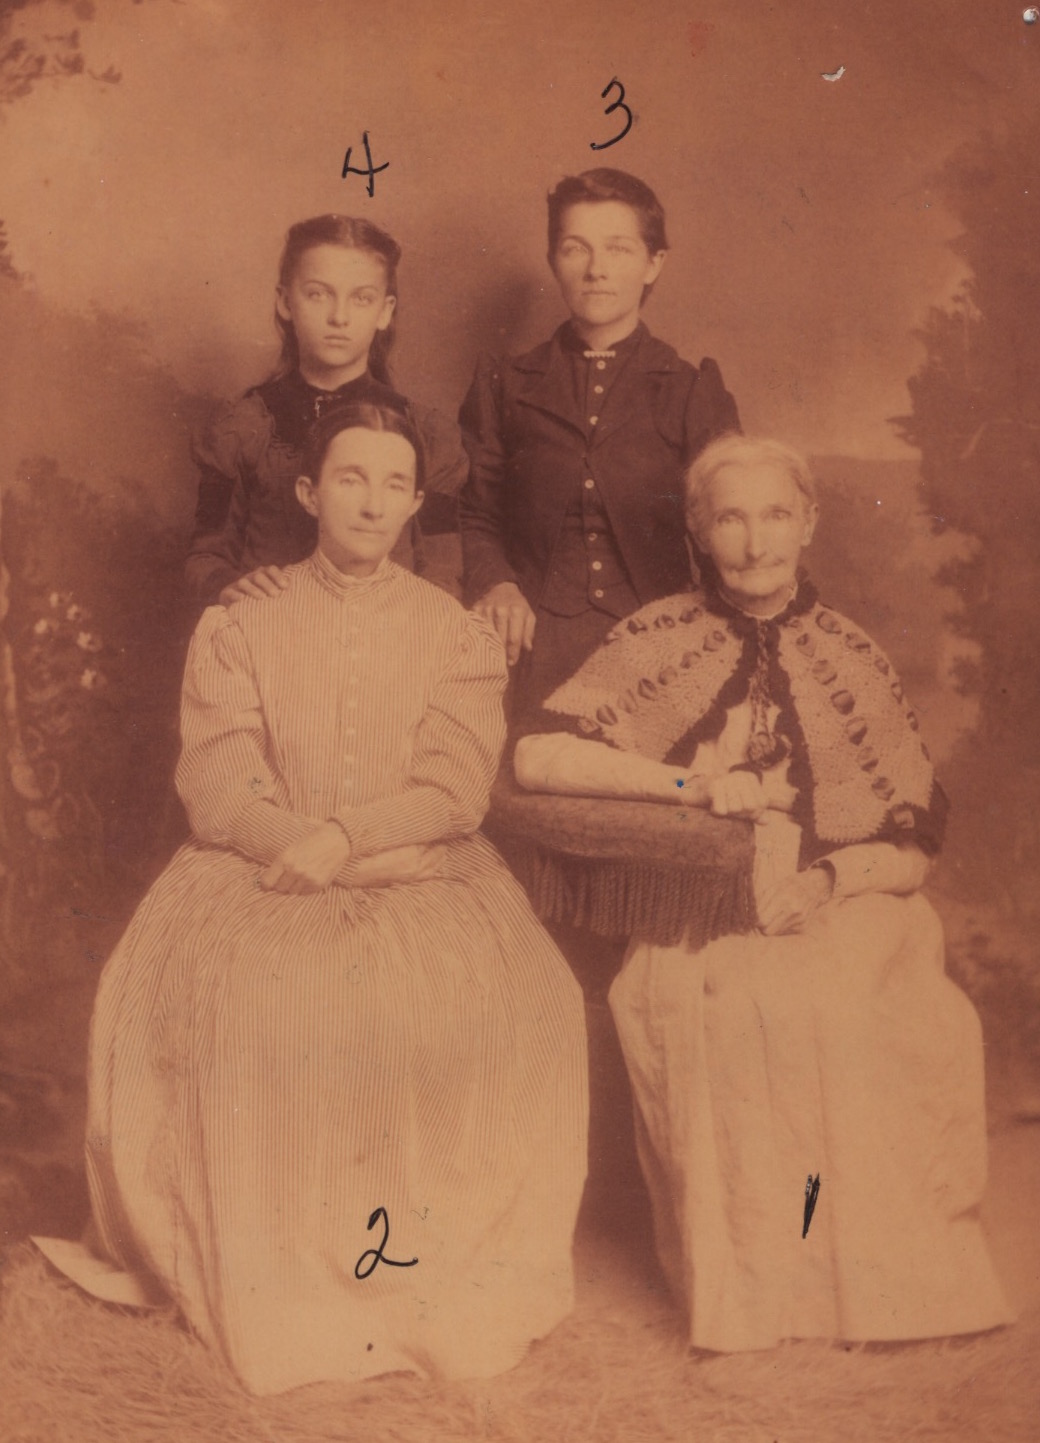 Members from the local school and church community. Mary Jane Bransford(1) was a teacher in the school.